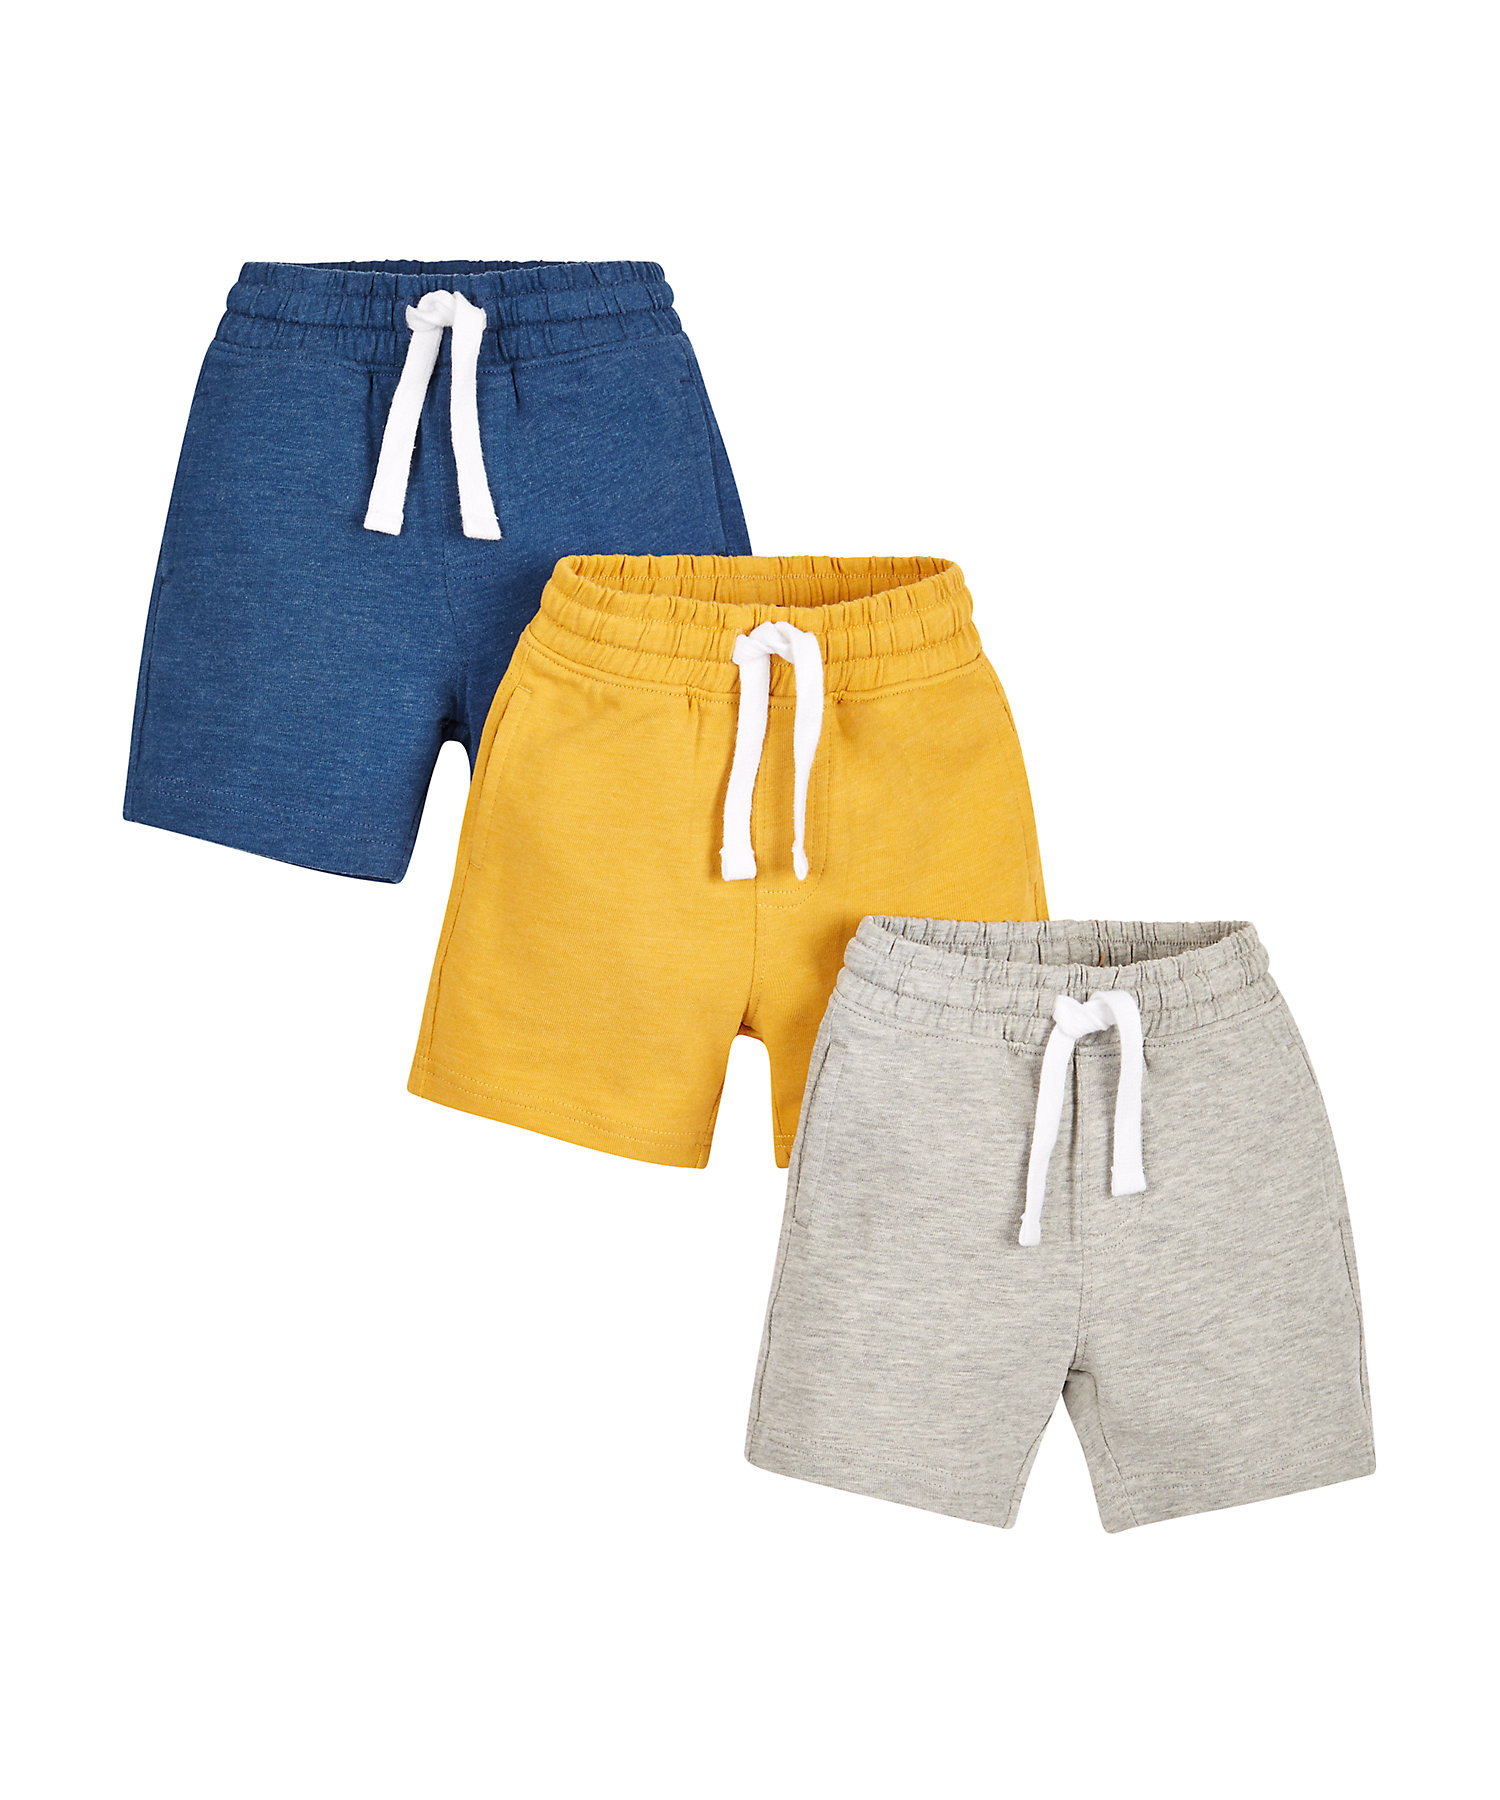 Mothercare | Boys Knitted Shorts - Pack Of 3 - Multicolor